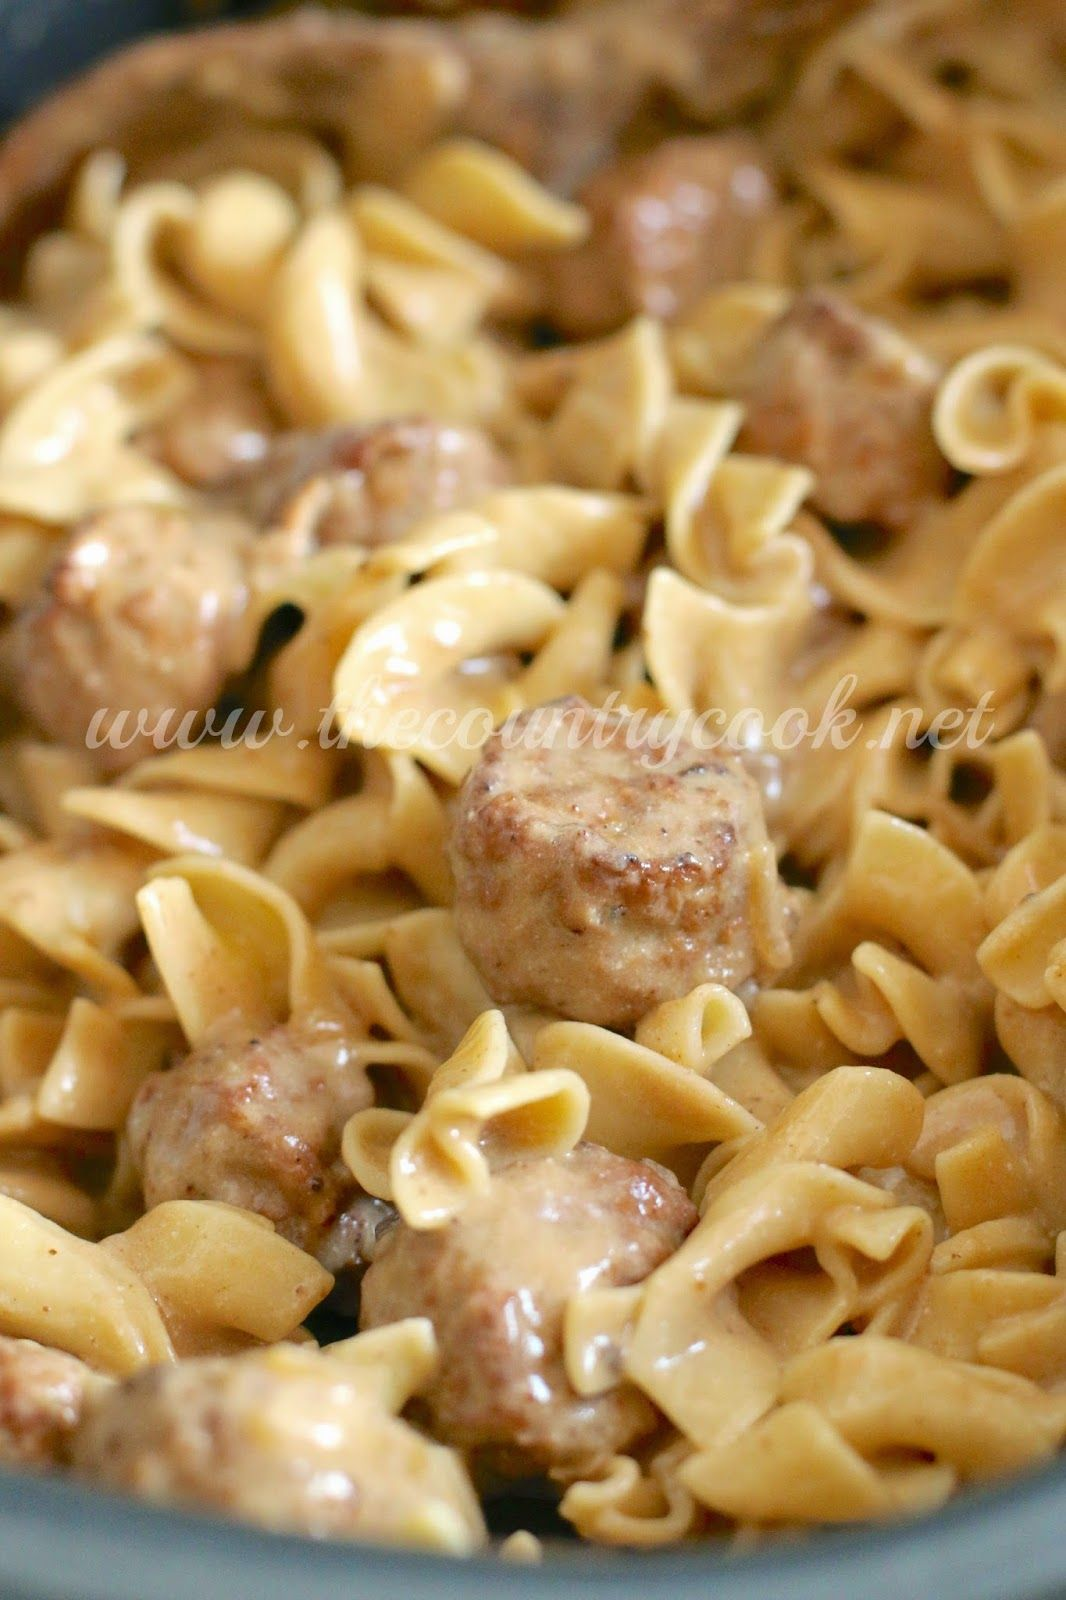 I am so excited to share this recipe with you today. After I shared the Crock Pot Spaghetti and Meatball  recipe a couple of weeks ago, I g...